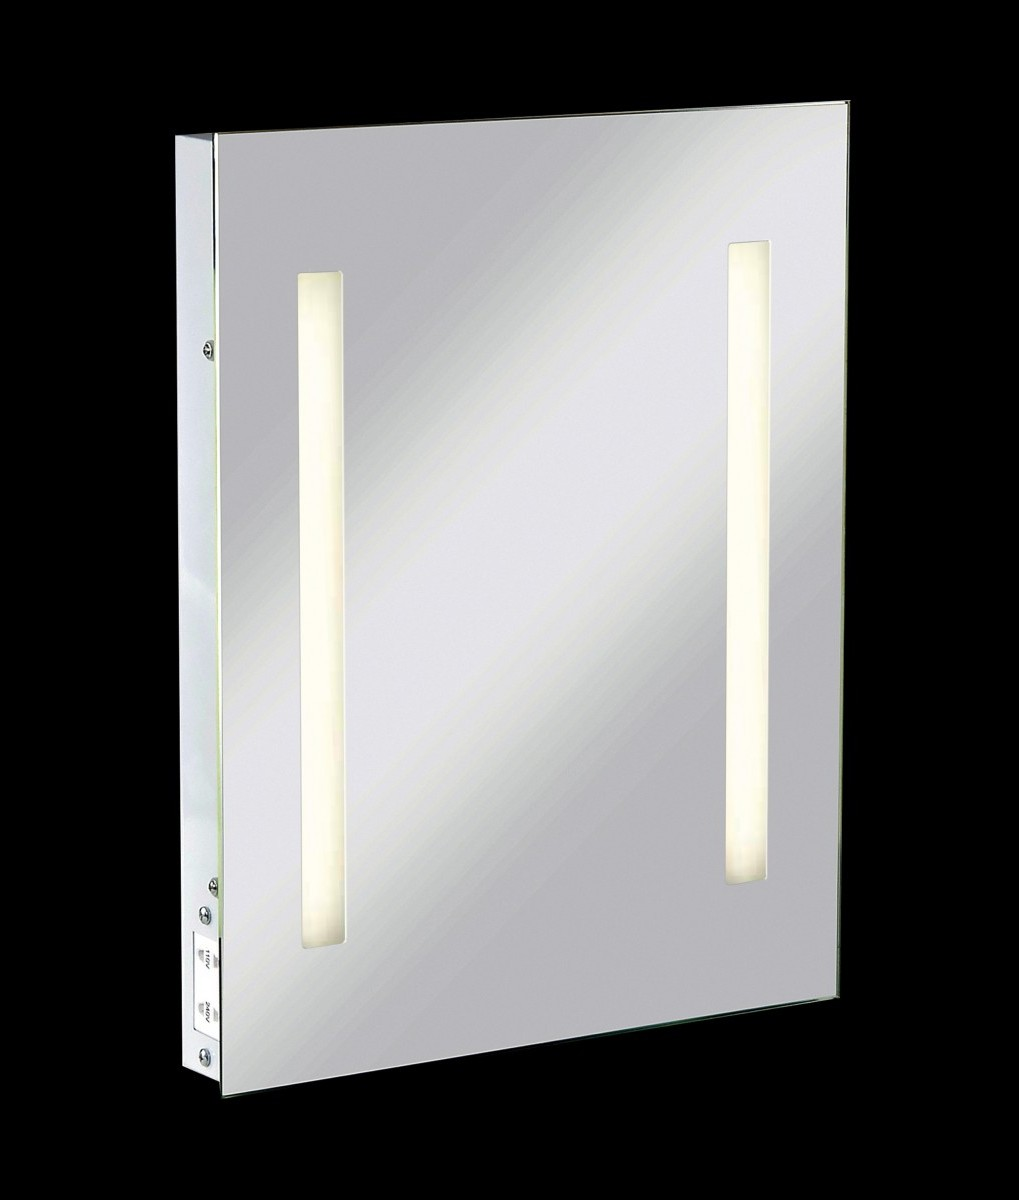 Shallow Profile Illuminated Mirror